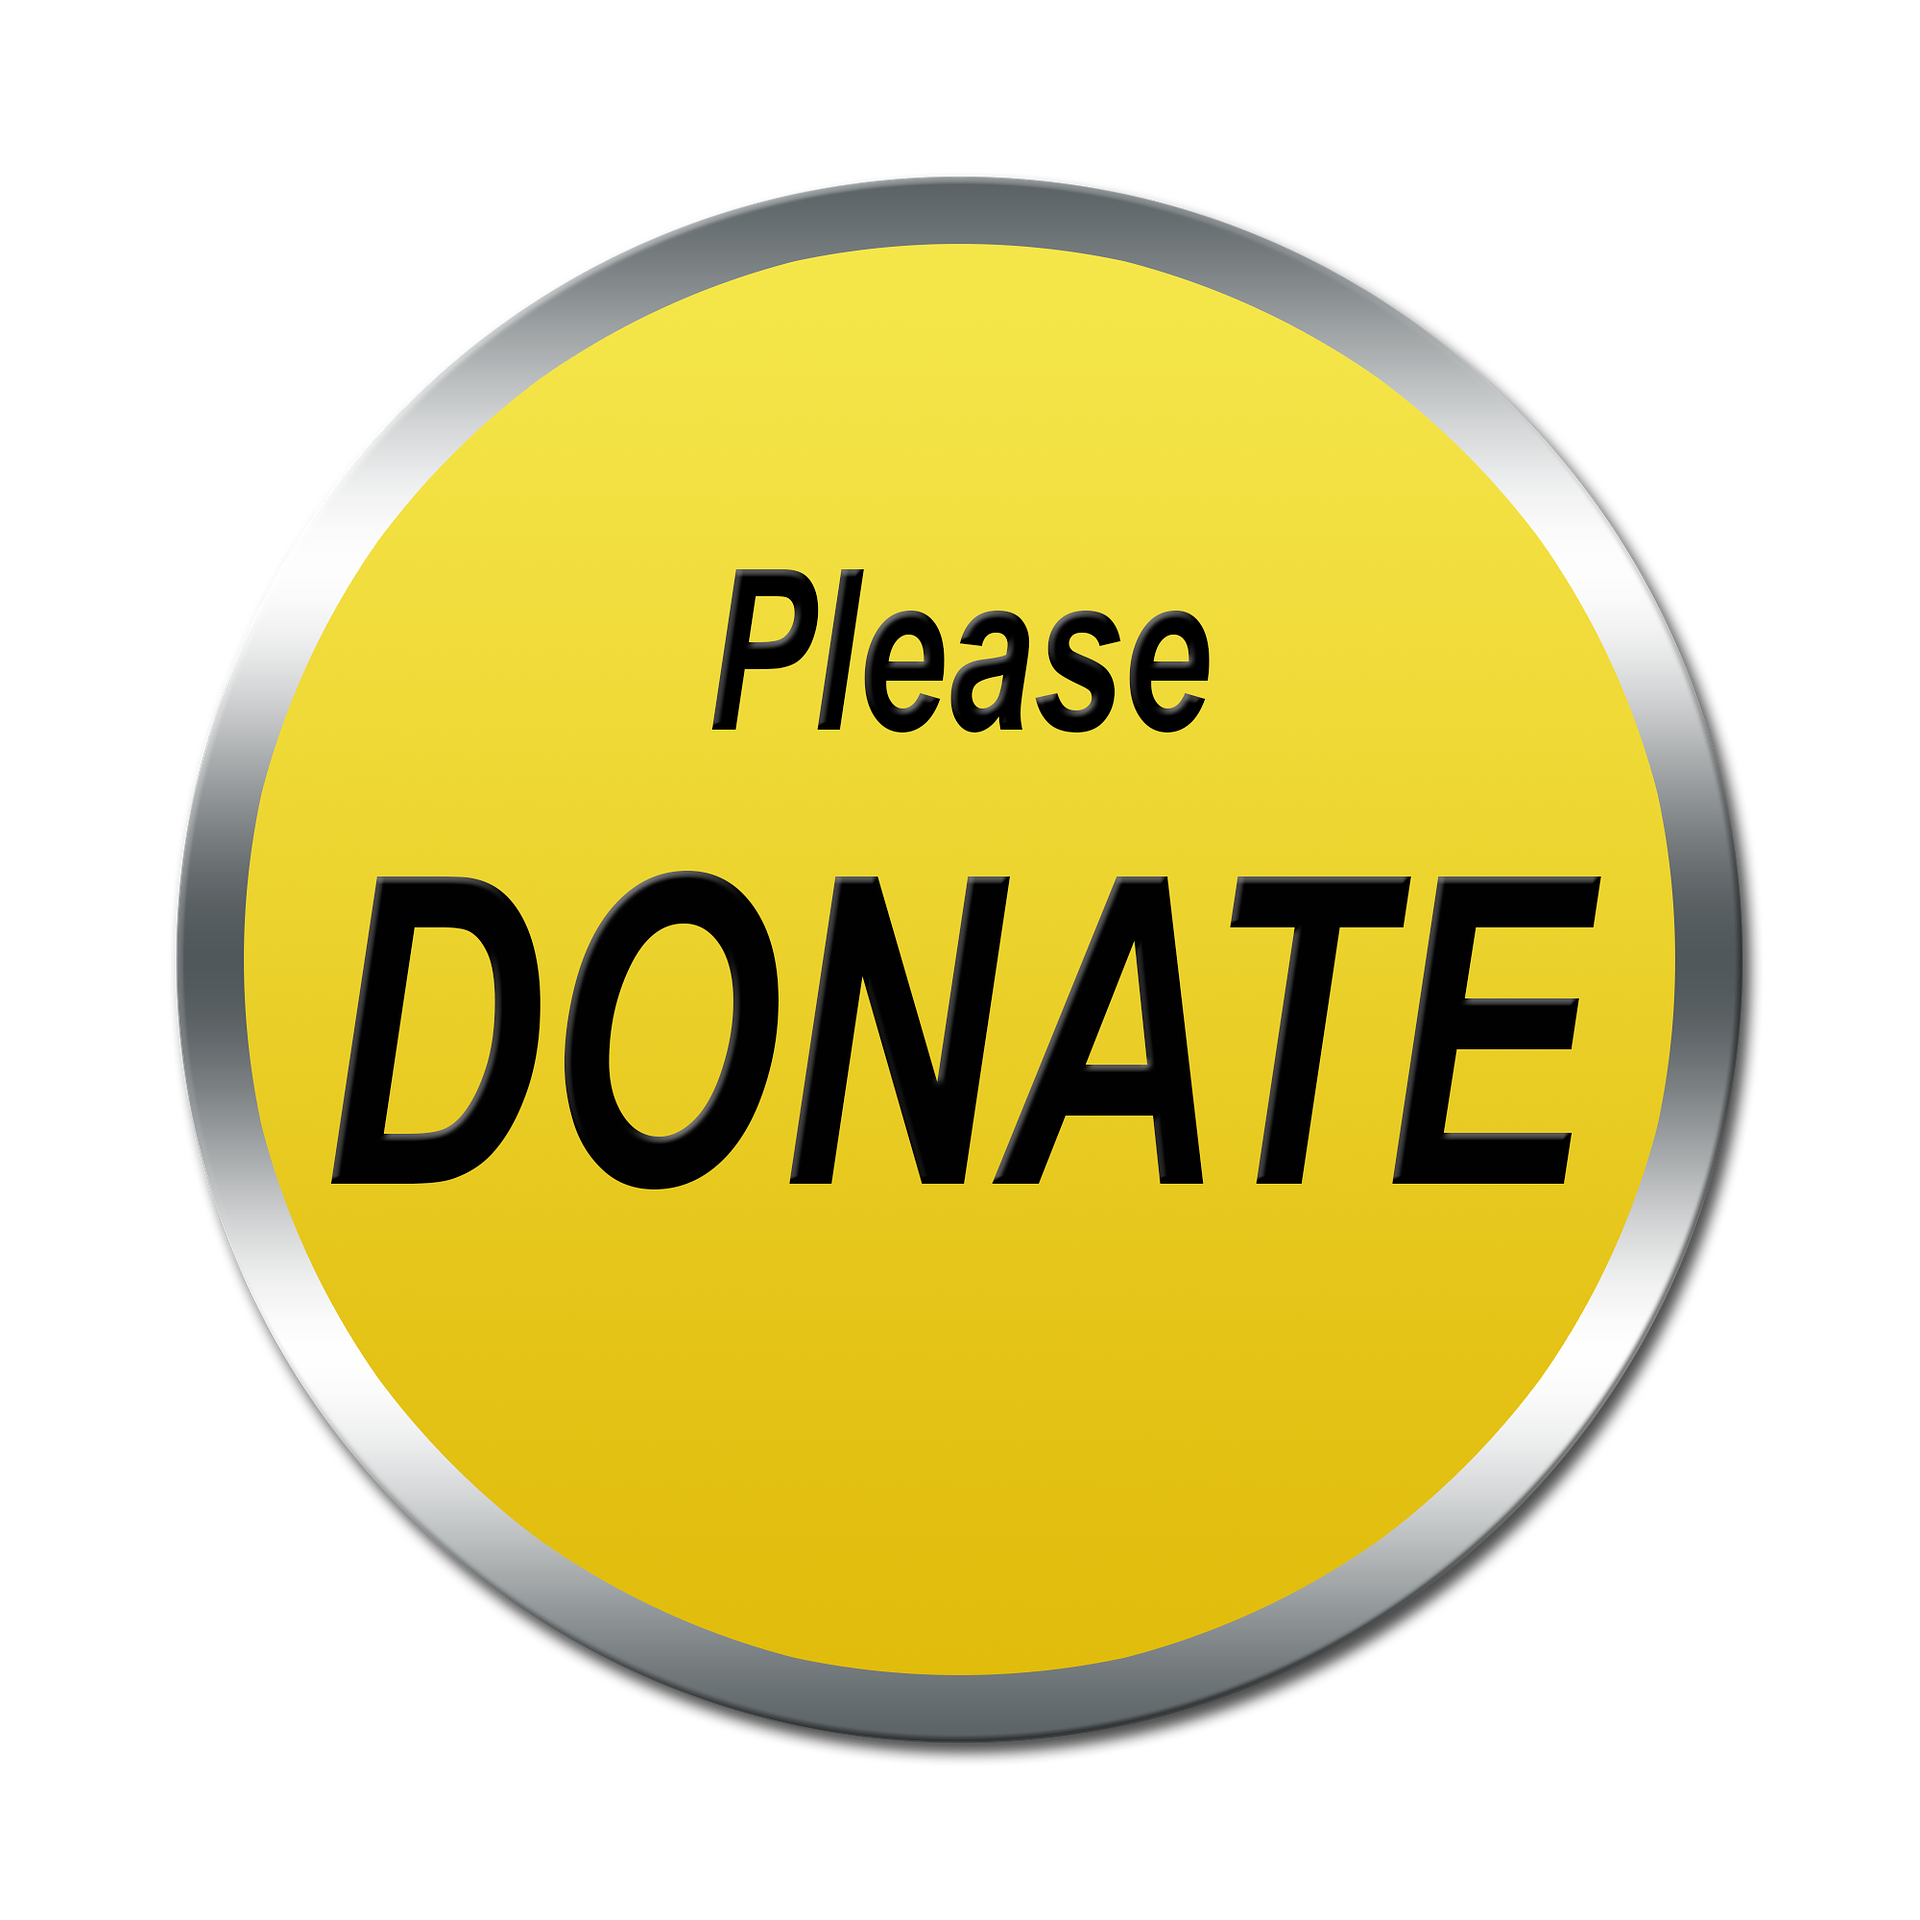 donate sign.png